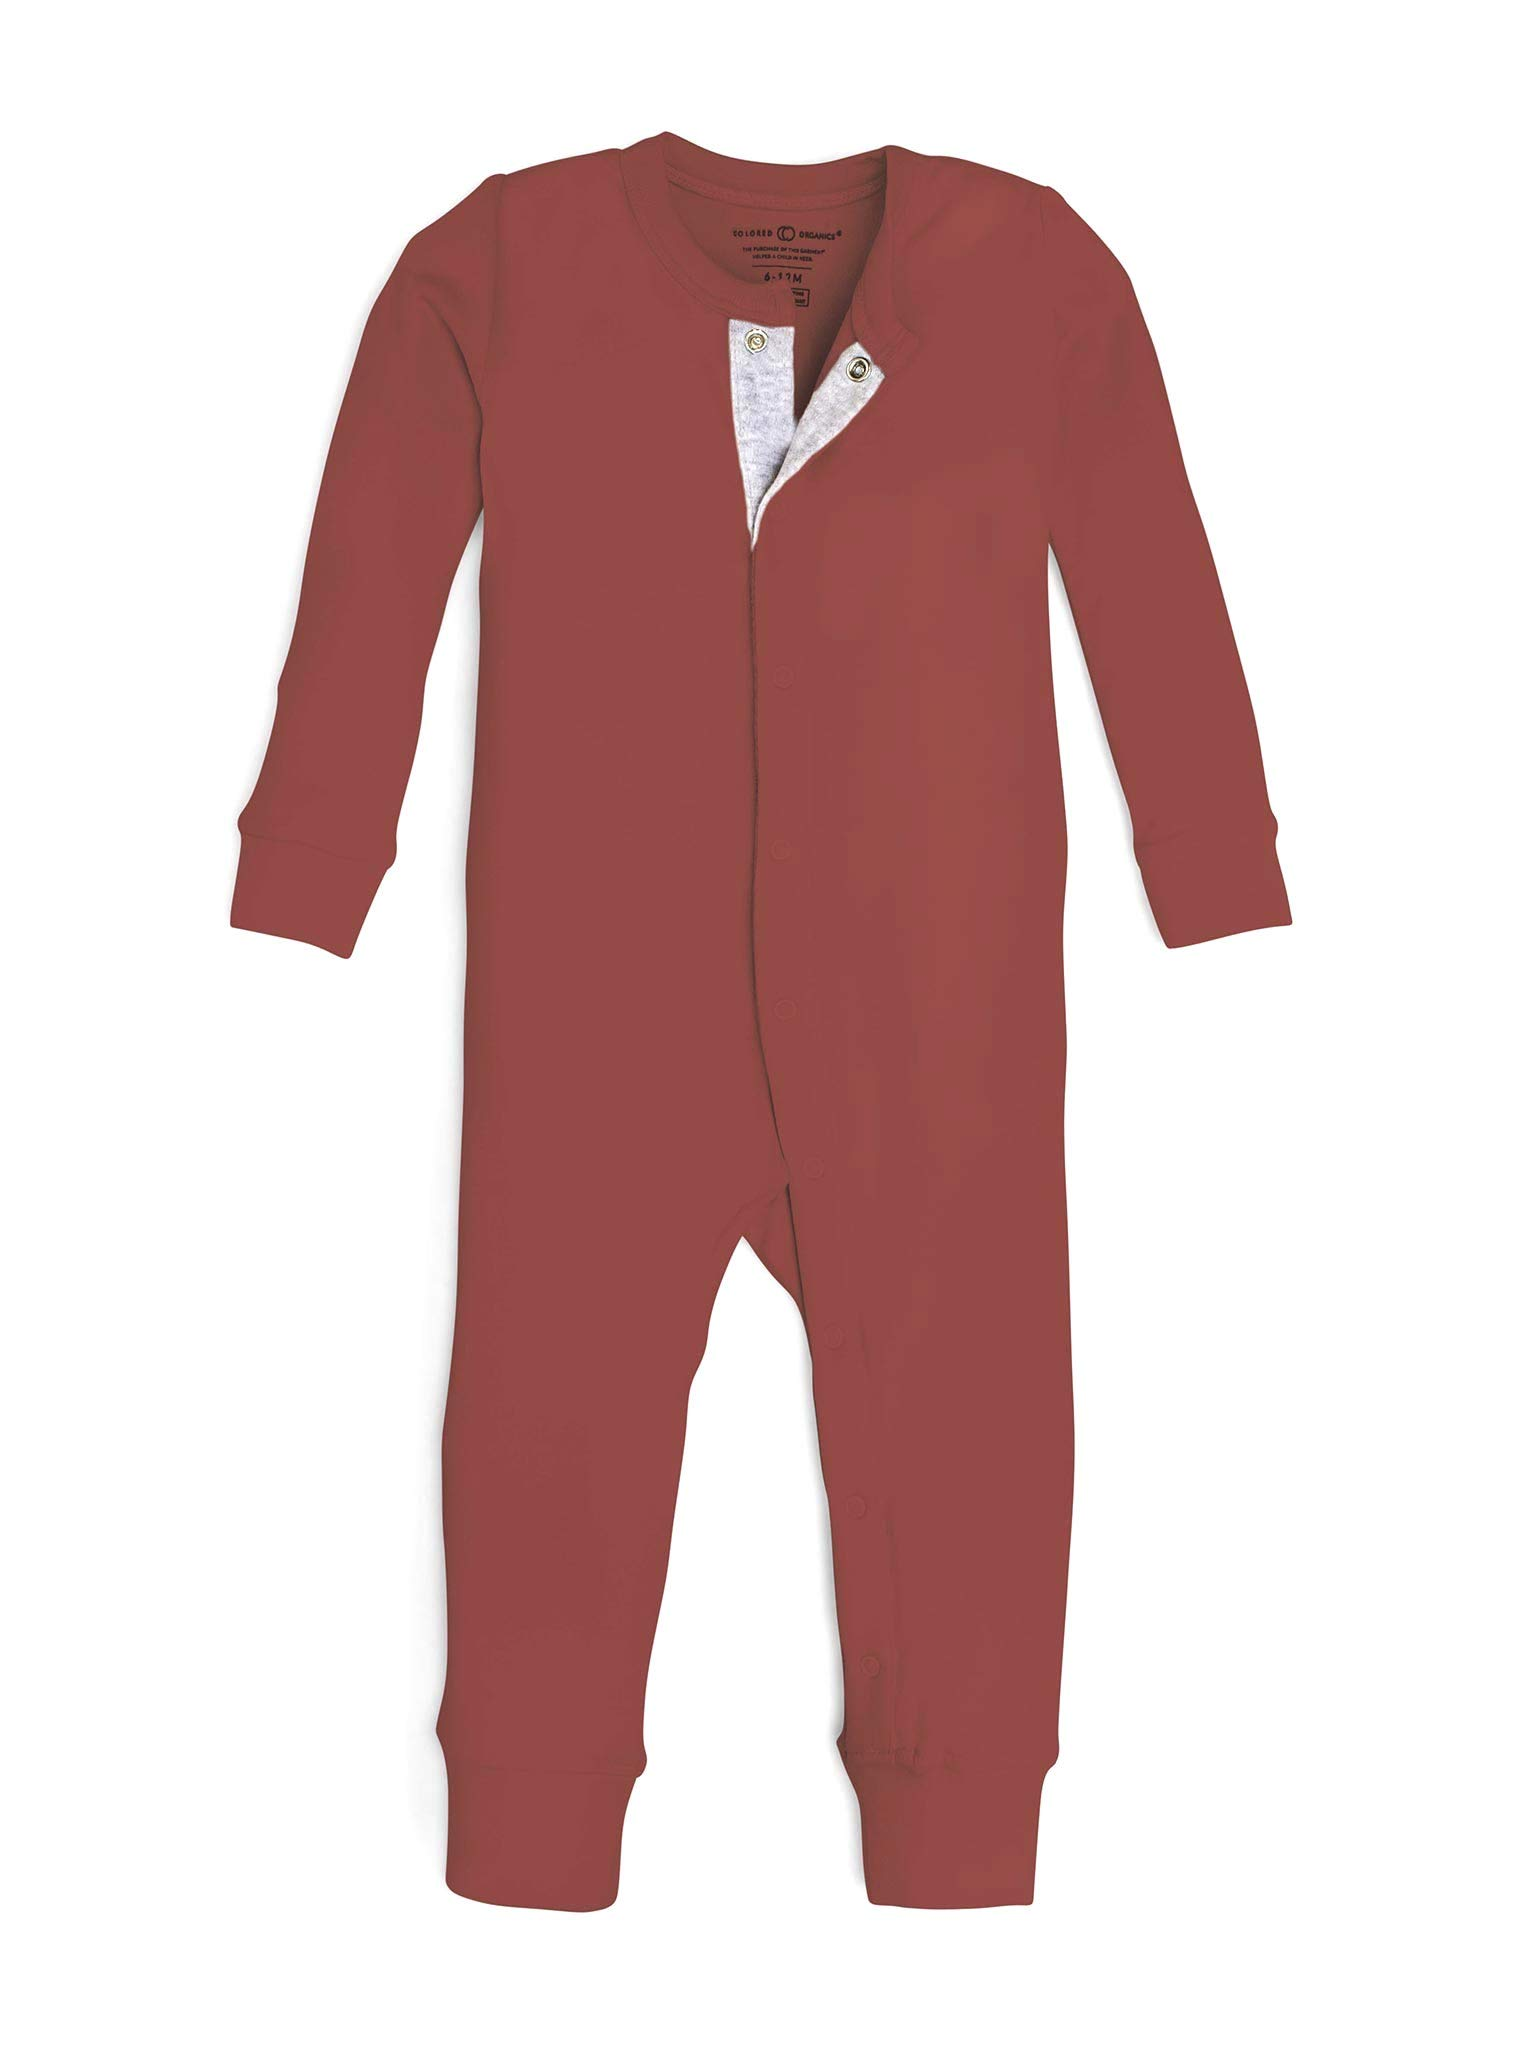 Colored Organics Unisex Baby Organic Cotton Emerson Sleeper - Long Sleeve Infant Coverall